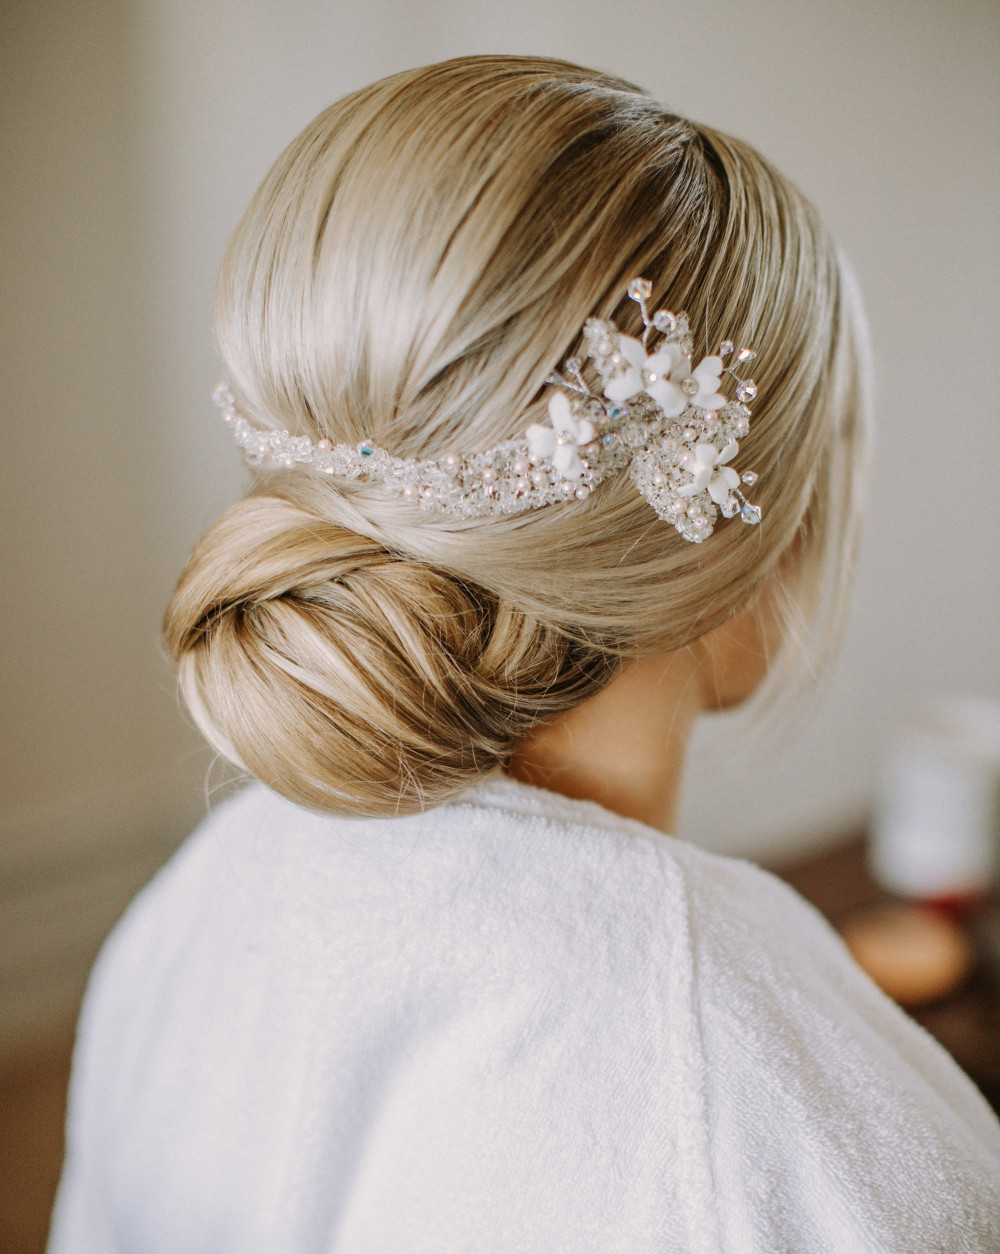 Textured low chignon by Emma of Beauty Ninjas, with hair accessory by Ritz & Sass. - Make Me Bridal Artist: Beauty Ninjas. Photography by: Marcel Grabowski. #classic #blonde #chignon #bun #lowbun #texturedupdo #textured #texturedbun #lowchignon